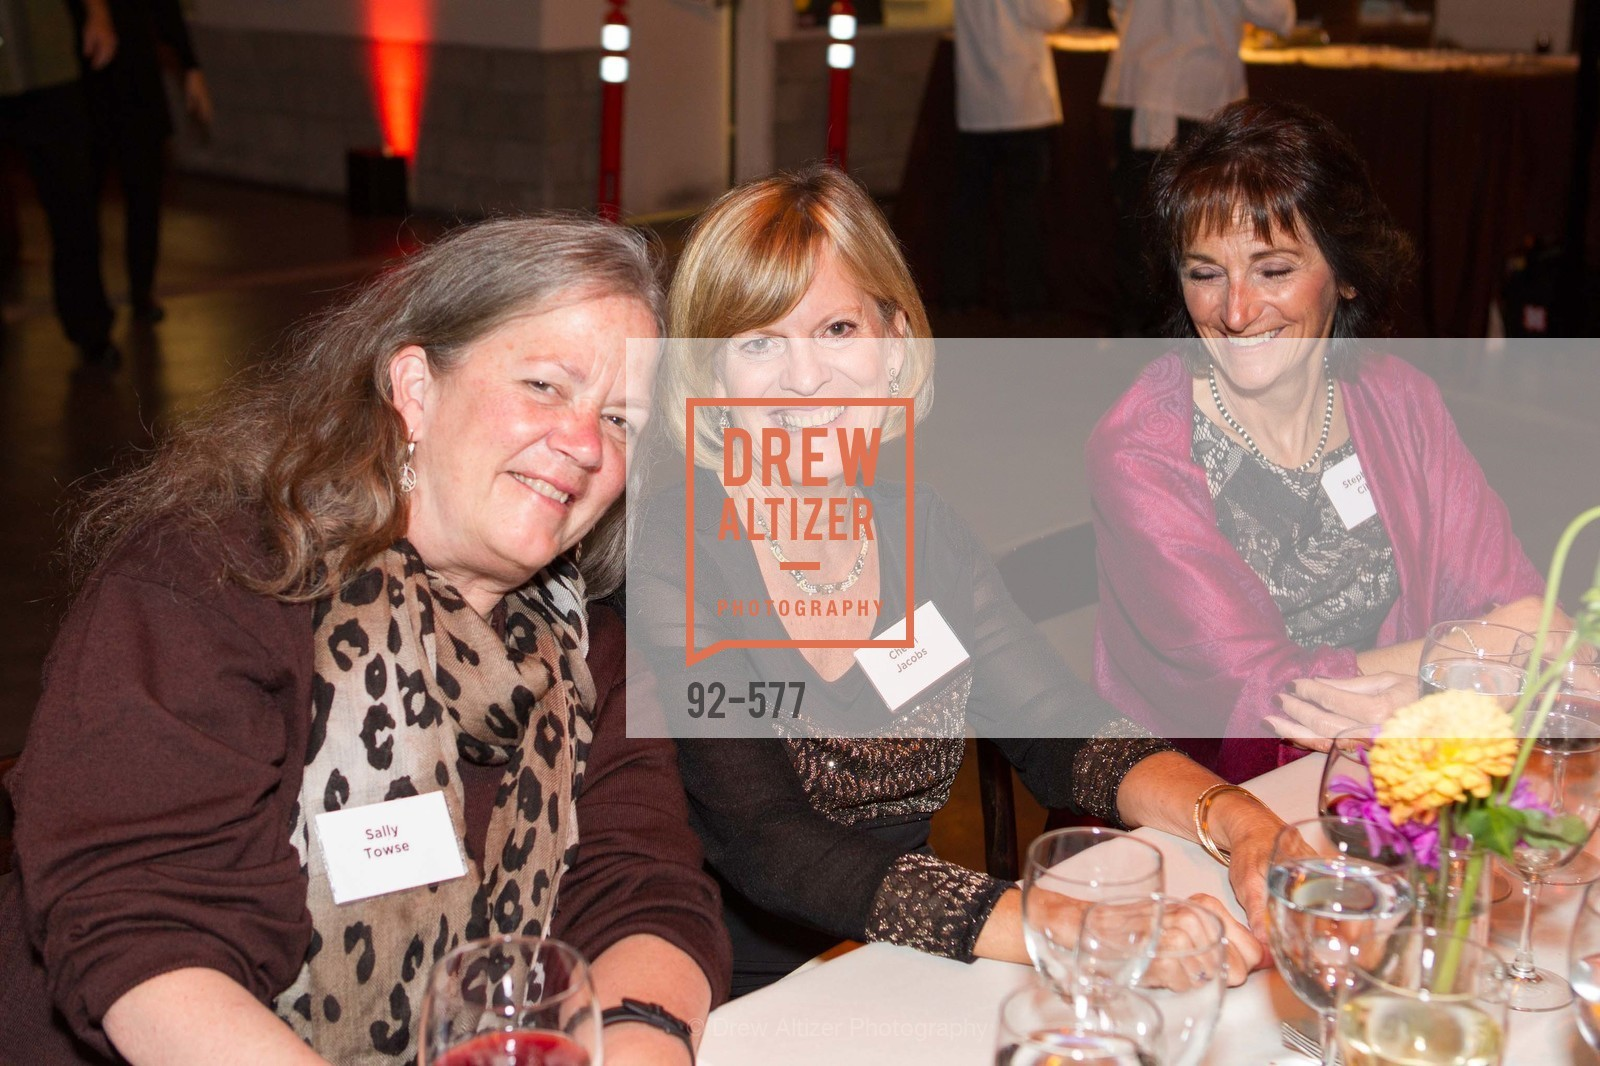 Sally Towse, Cheryl Jacobs, SF-MARIN FOOD BANK One Big Table Gala, US, September 27th, 2014,Drew Altizer, Drew Altizer Photography, full-service agency, private events, San Francisco photographer, photographer california